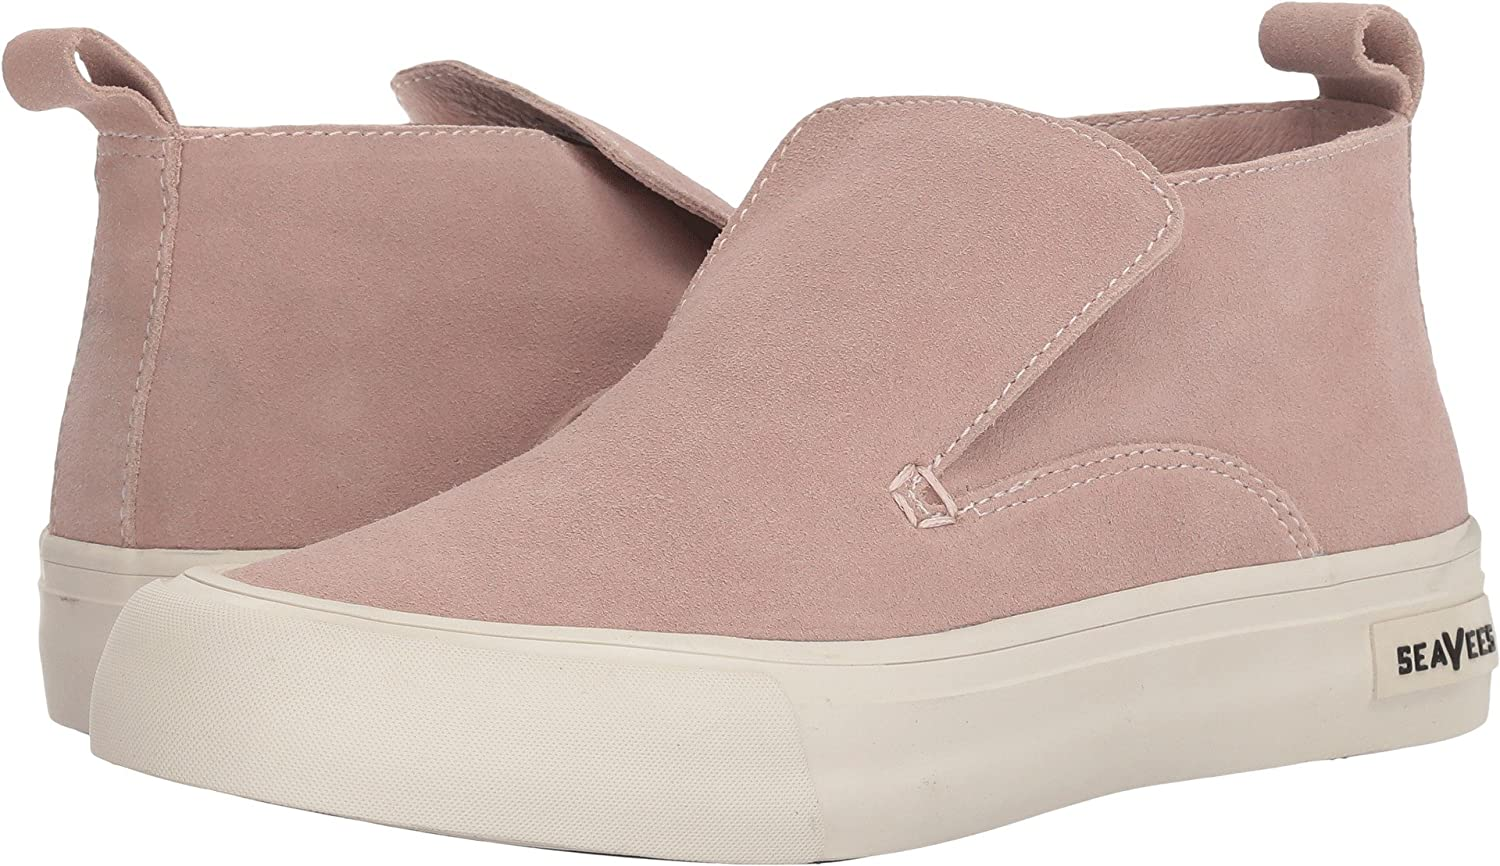 SeaVees Women's Huntington Middie Sneaker B008TV46PW 5.5 B(M) US|Rose Quartz